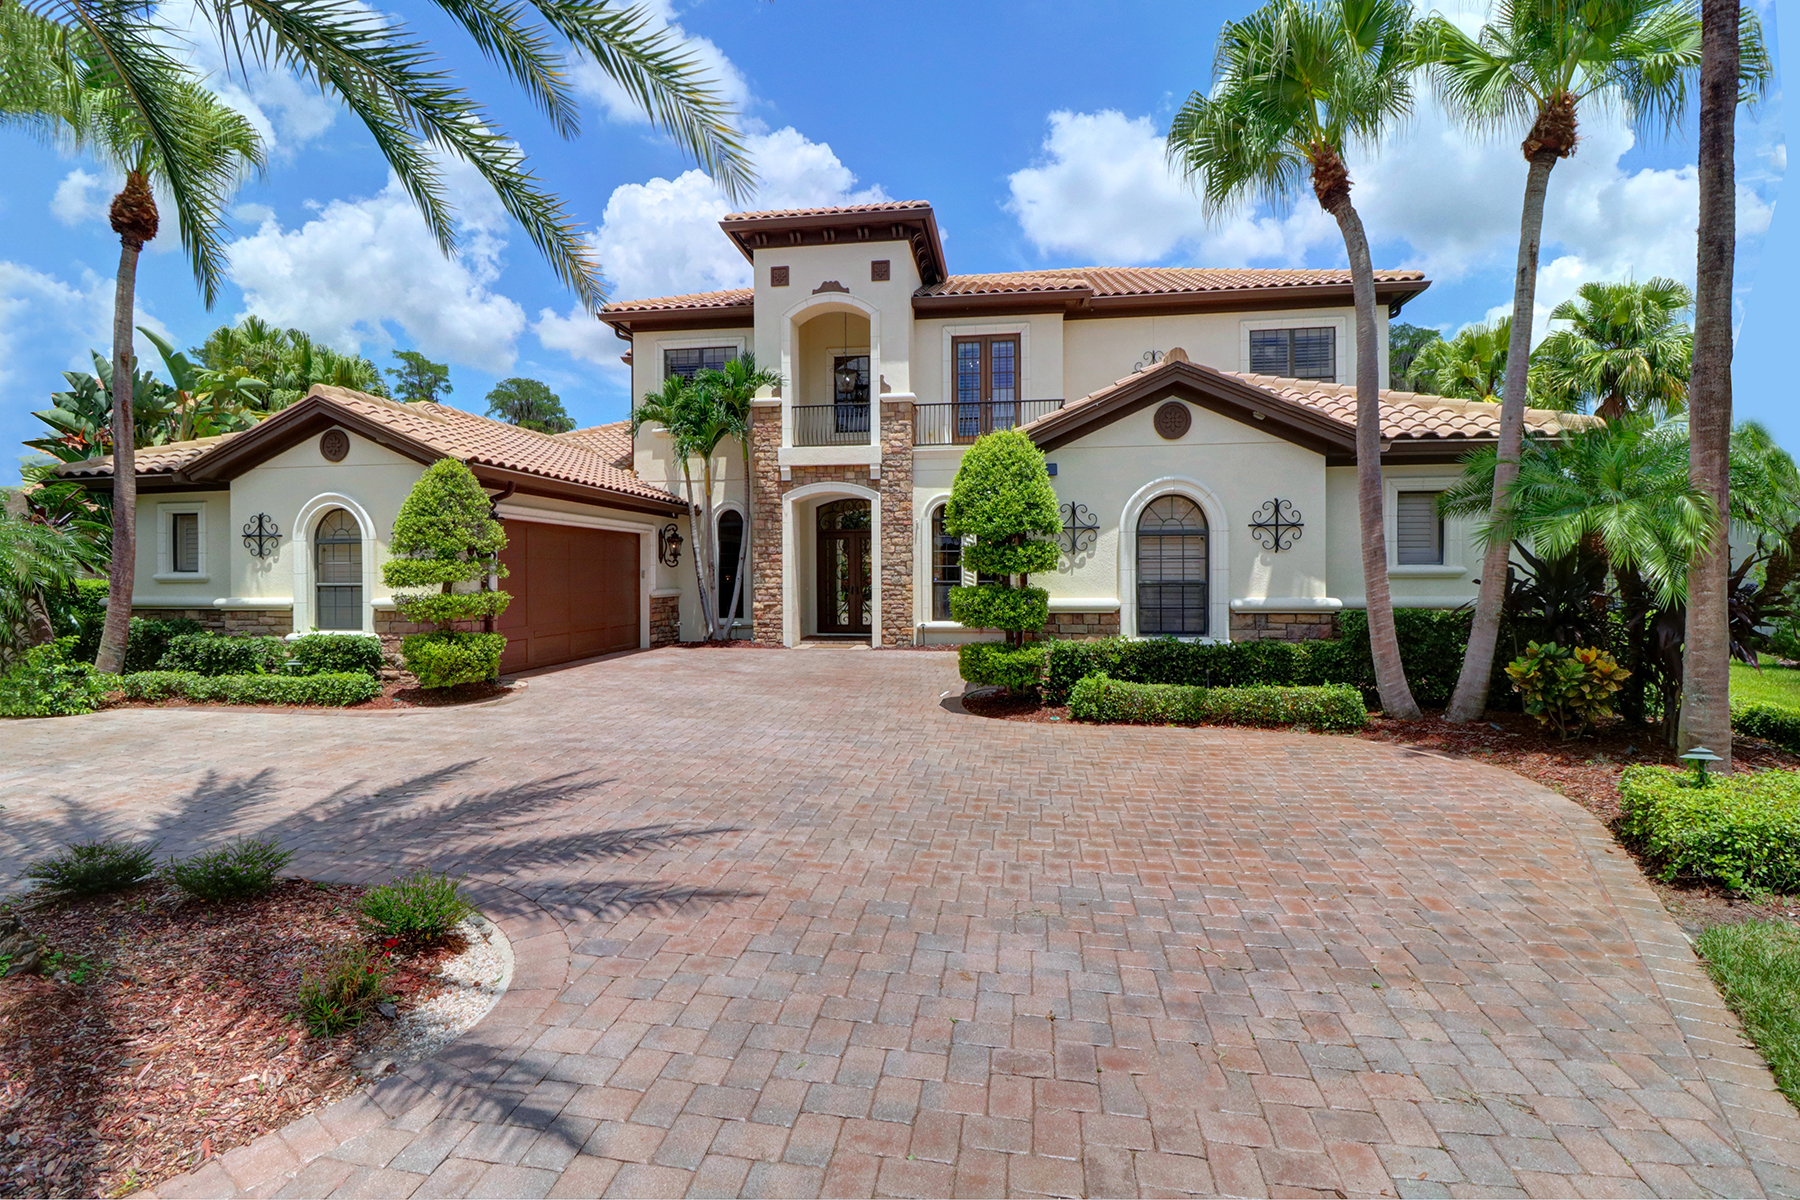 Single Family Homes for Active at LUTZ 17301 Ladera Estates Blvd Lutz, Florida 33548 United States